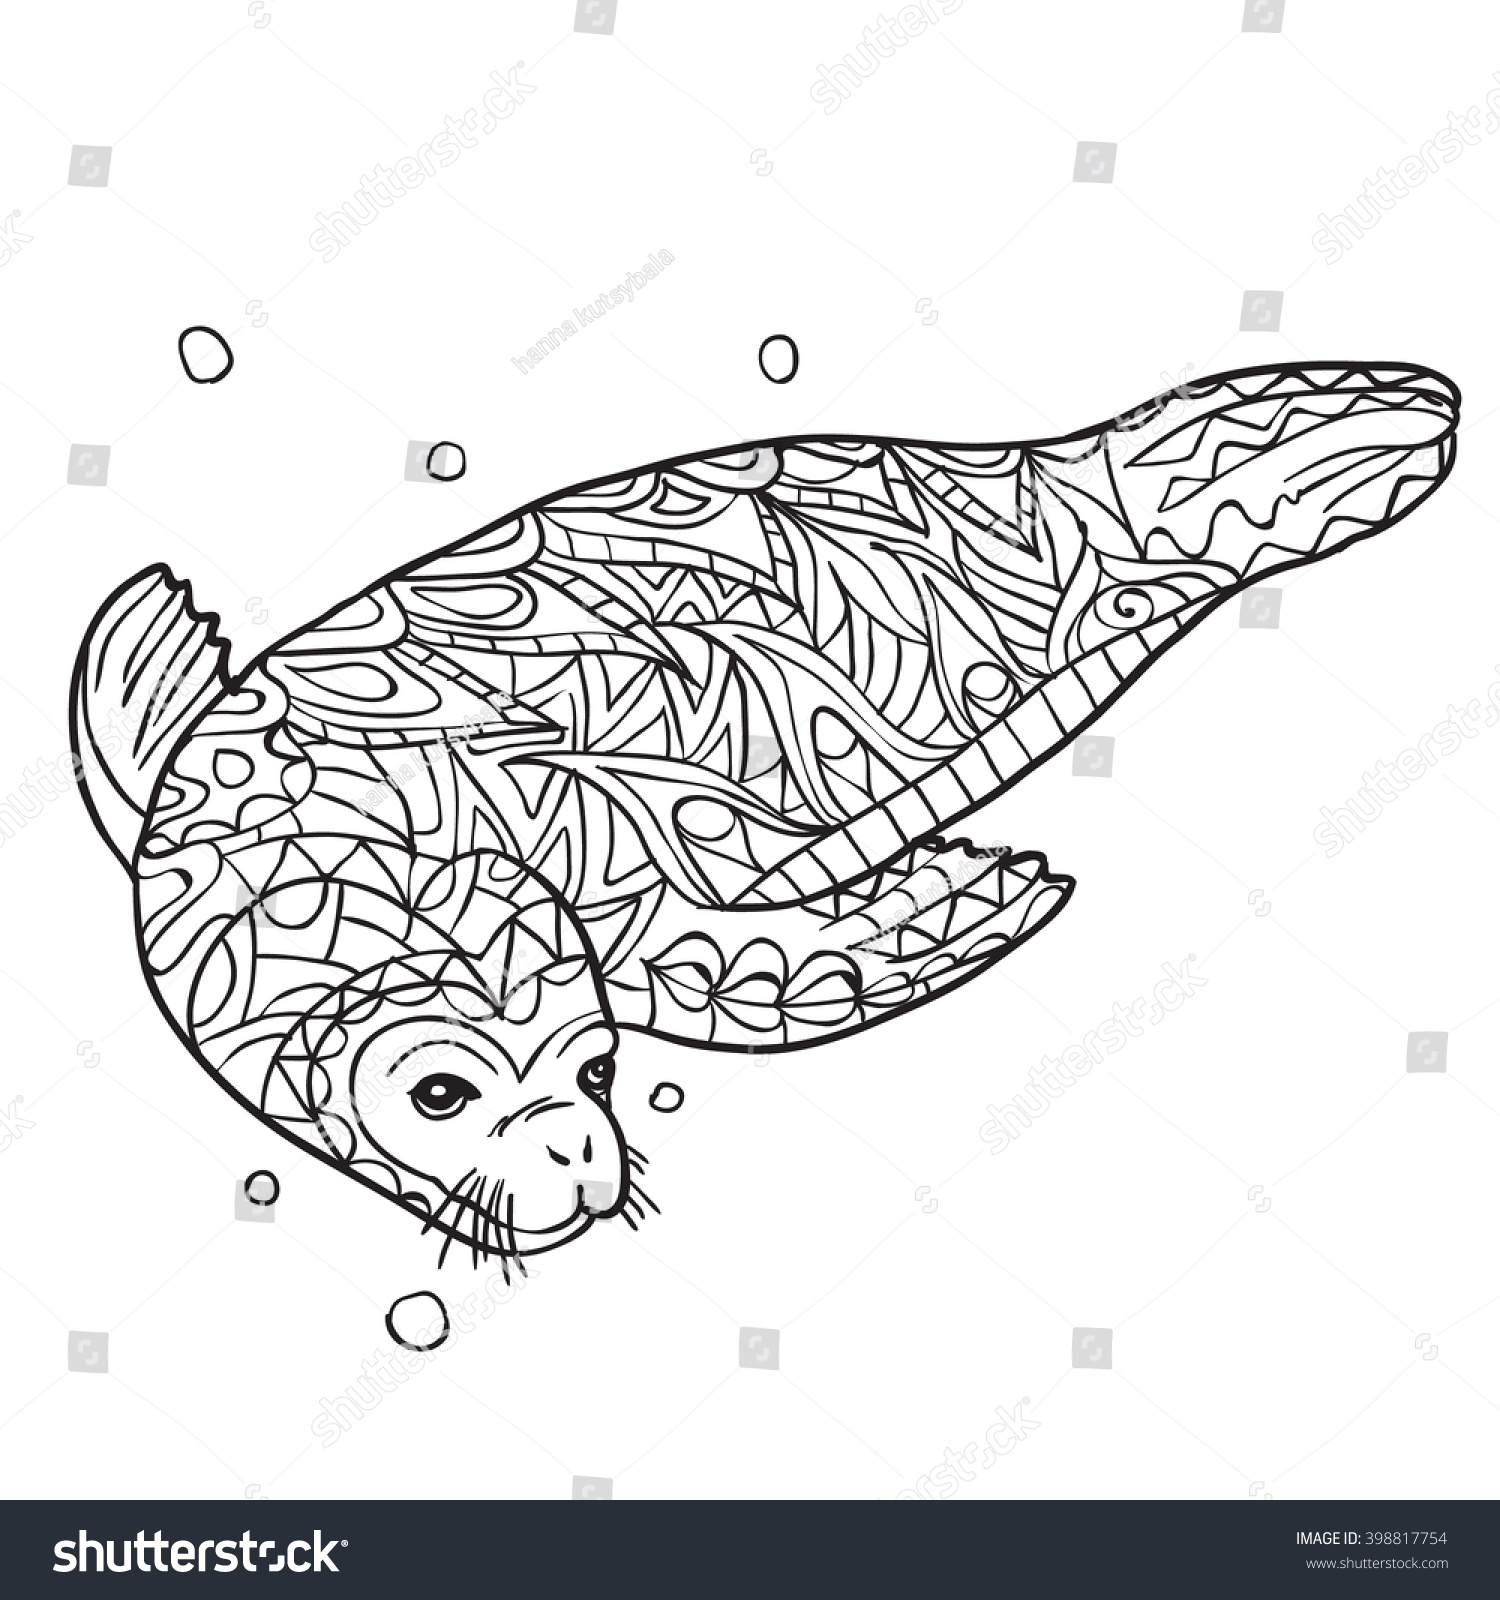 stock vector hand drawn coloring pages with seal illustration for adult anti stress coloring books with high